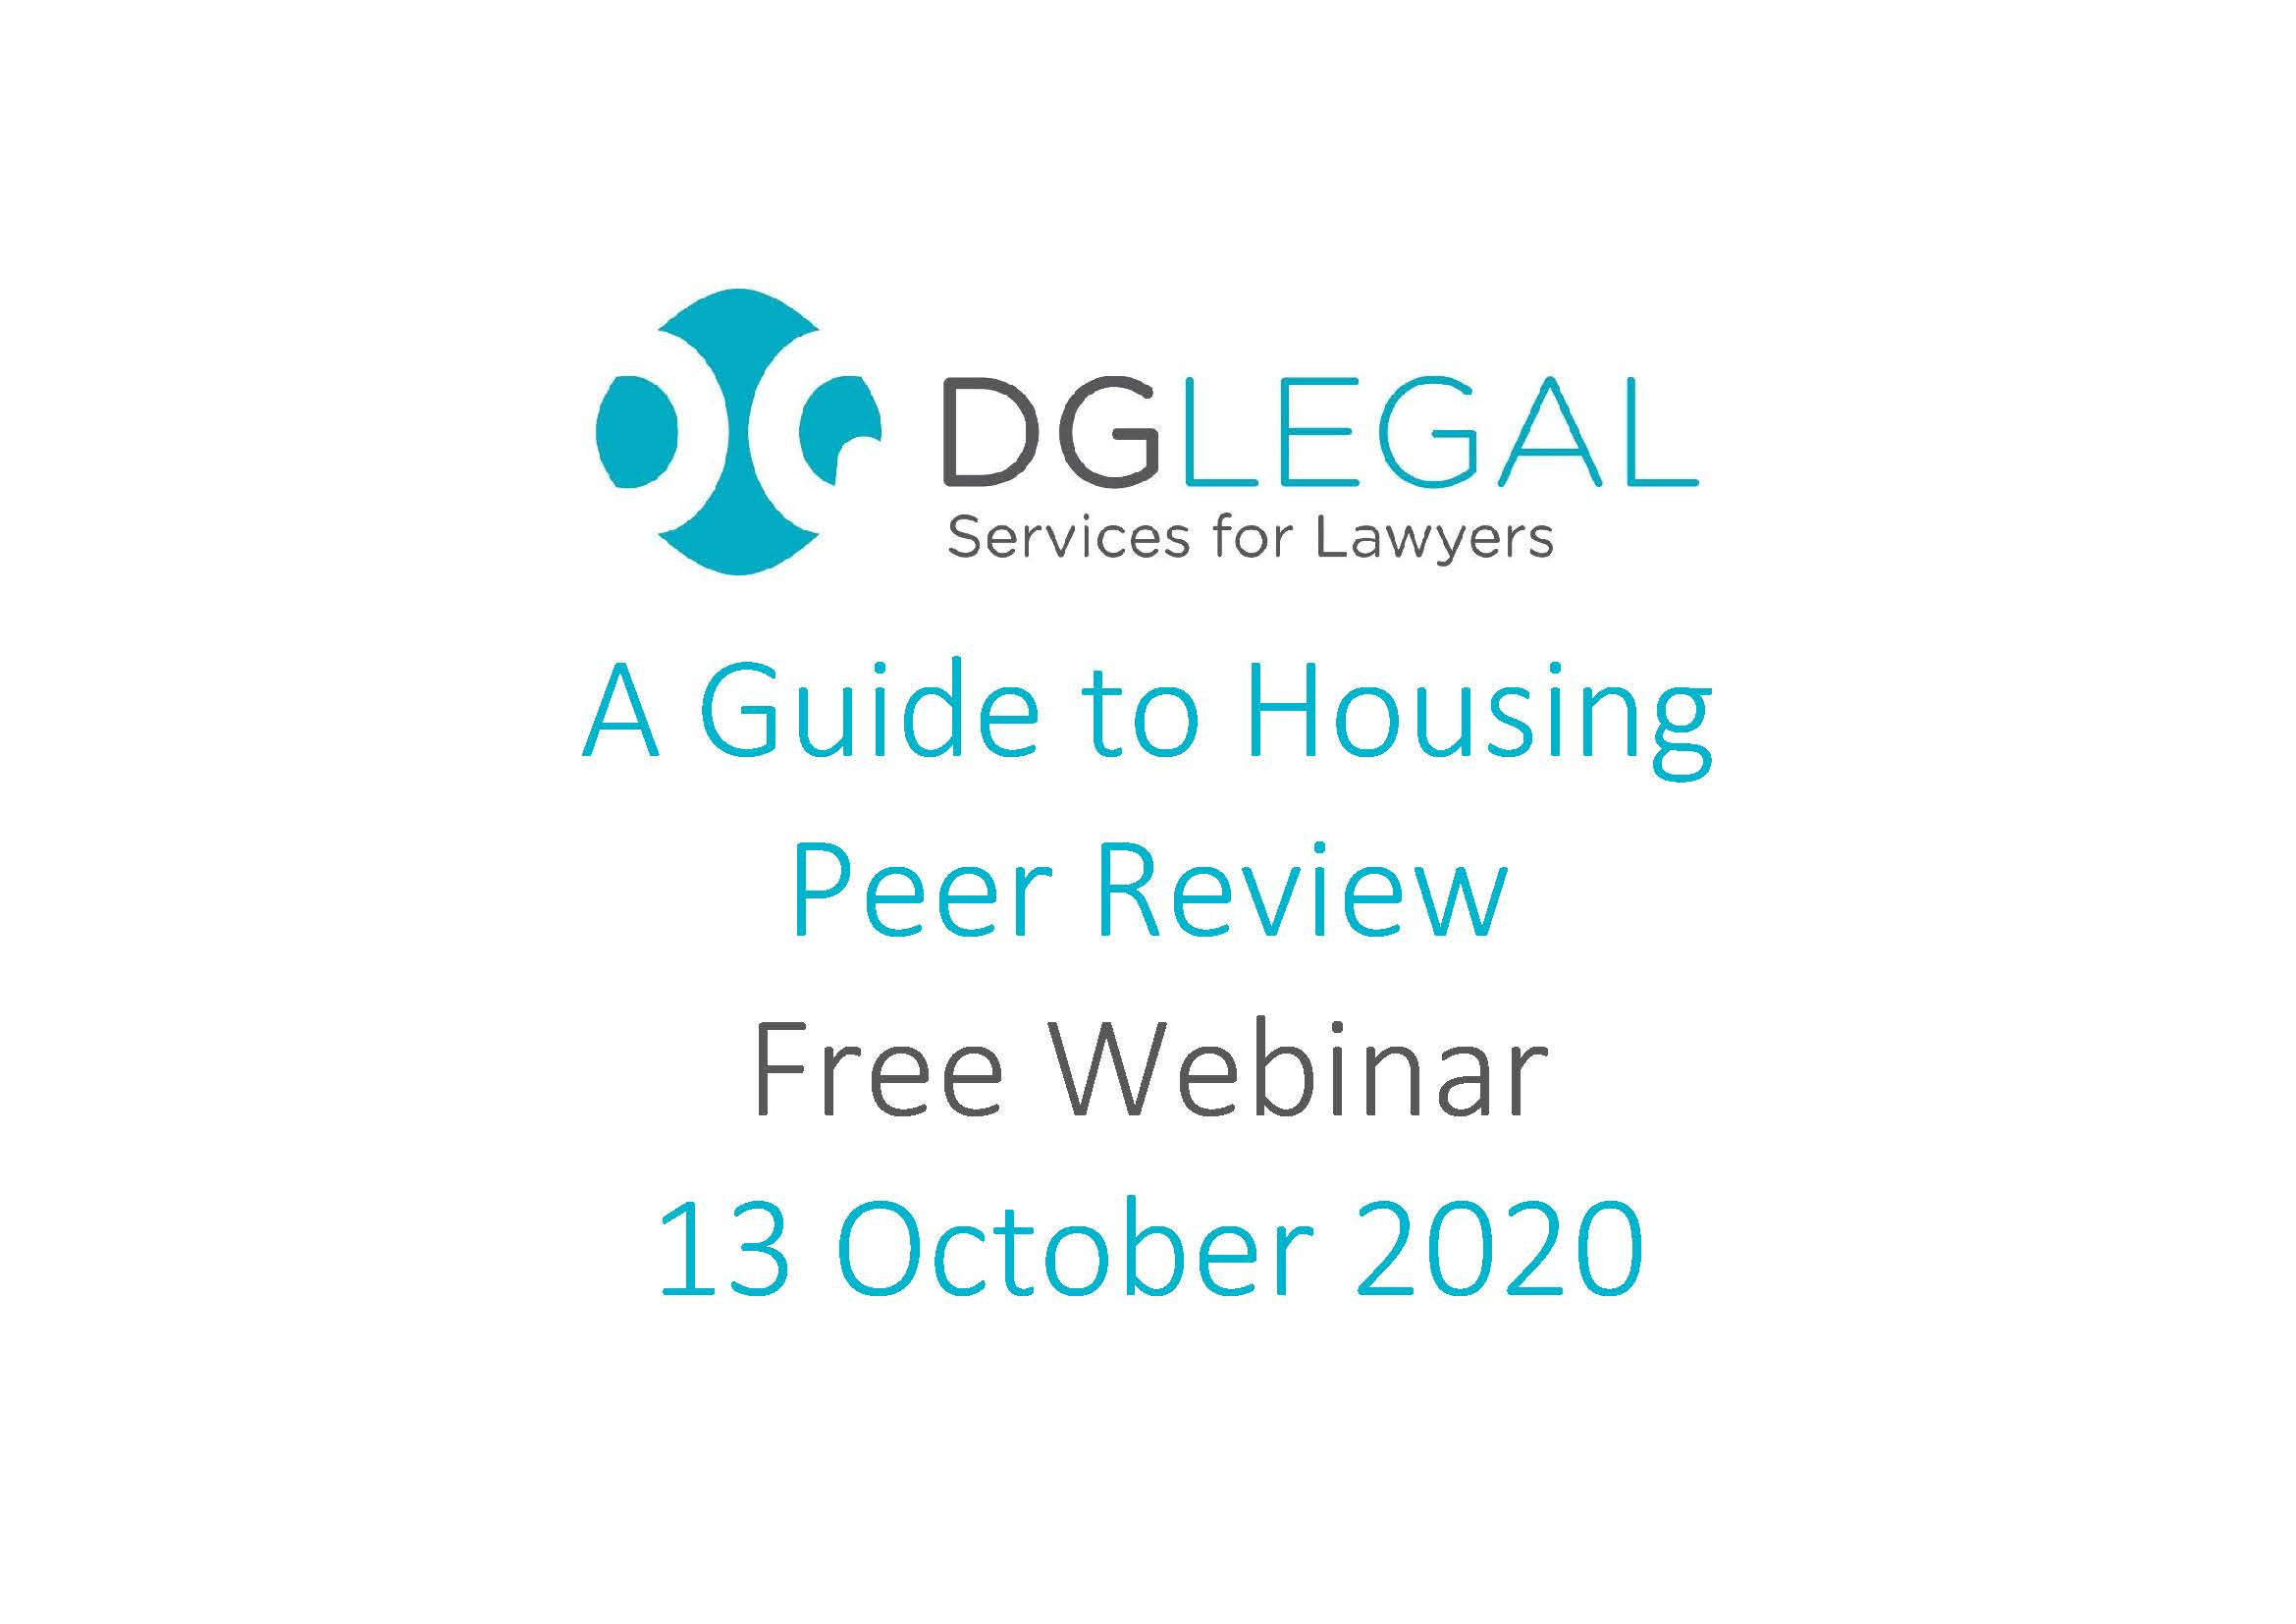 A Guide to Housing Peer Review Webinar